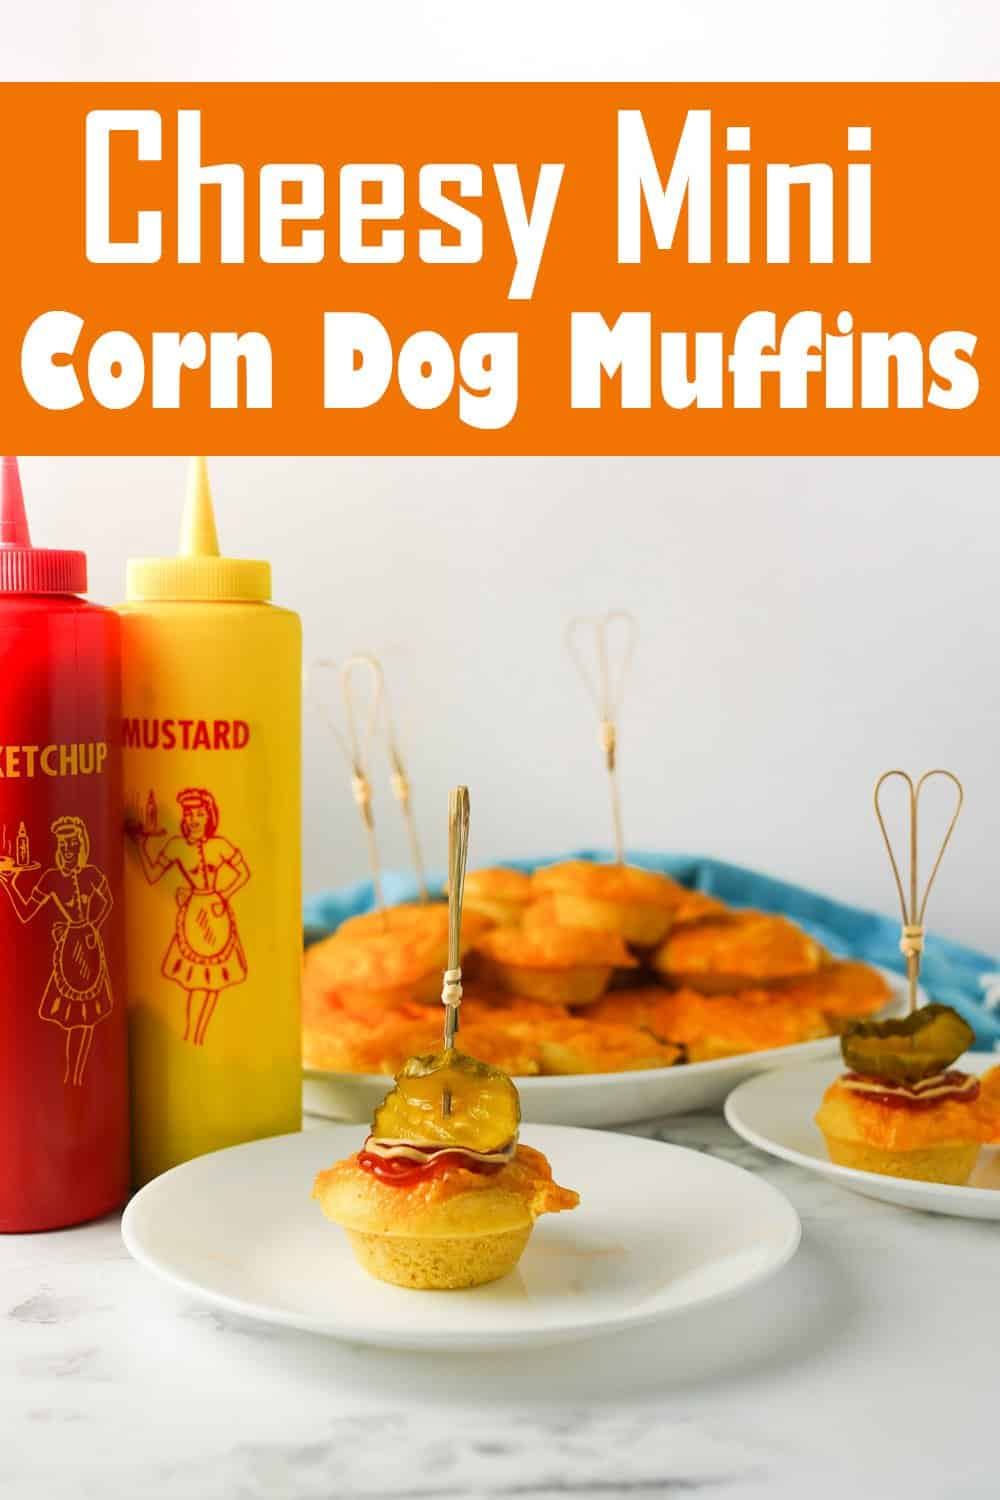 Cheesy Mini Corn Dog Muffins on two plates and platter with ketchup and mustard on the side